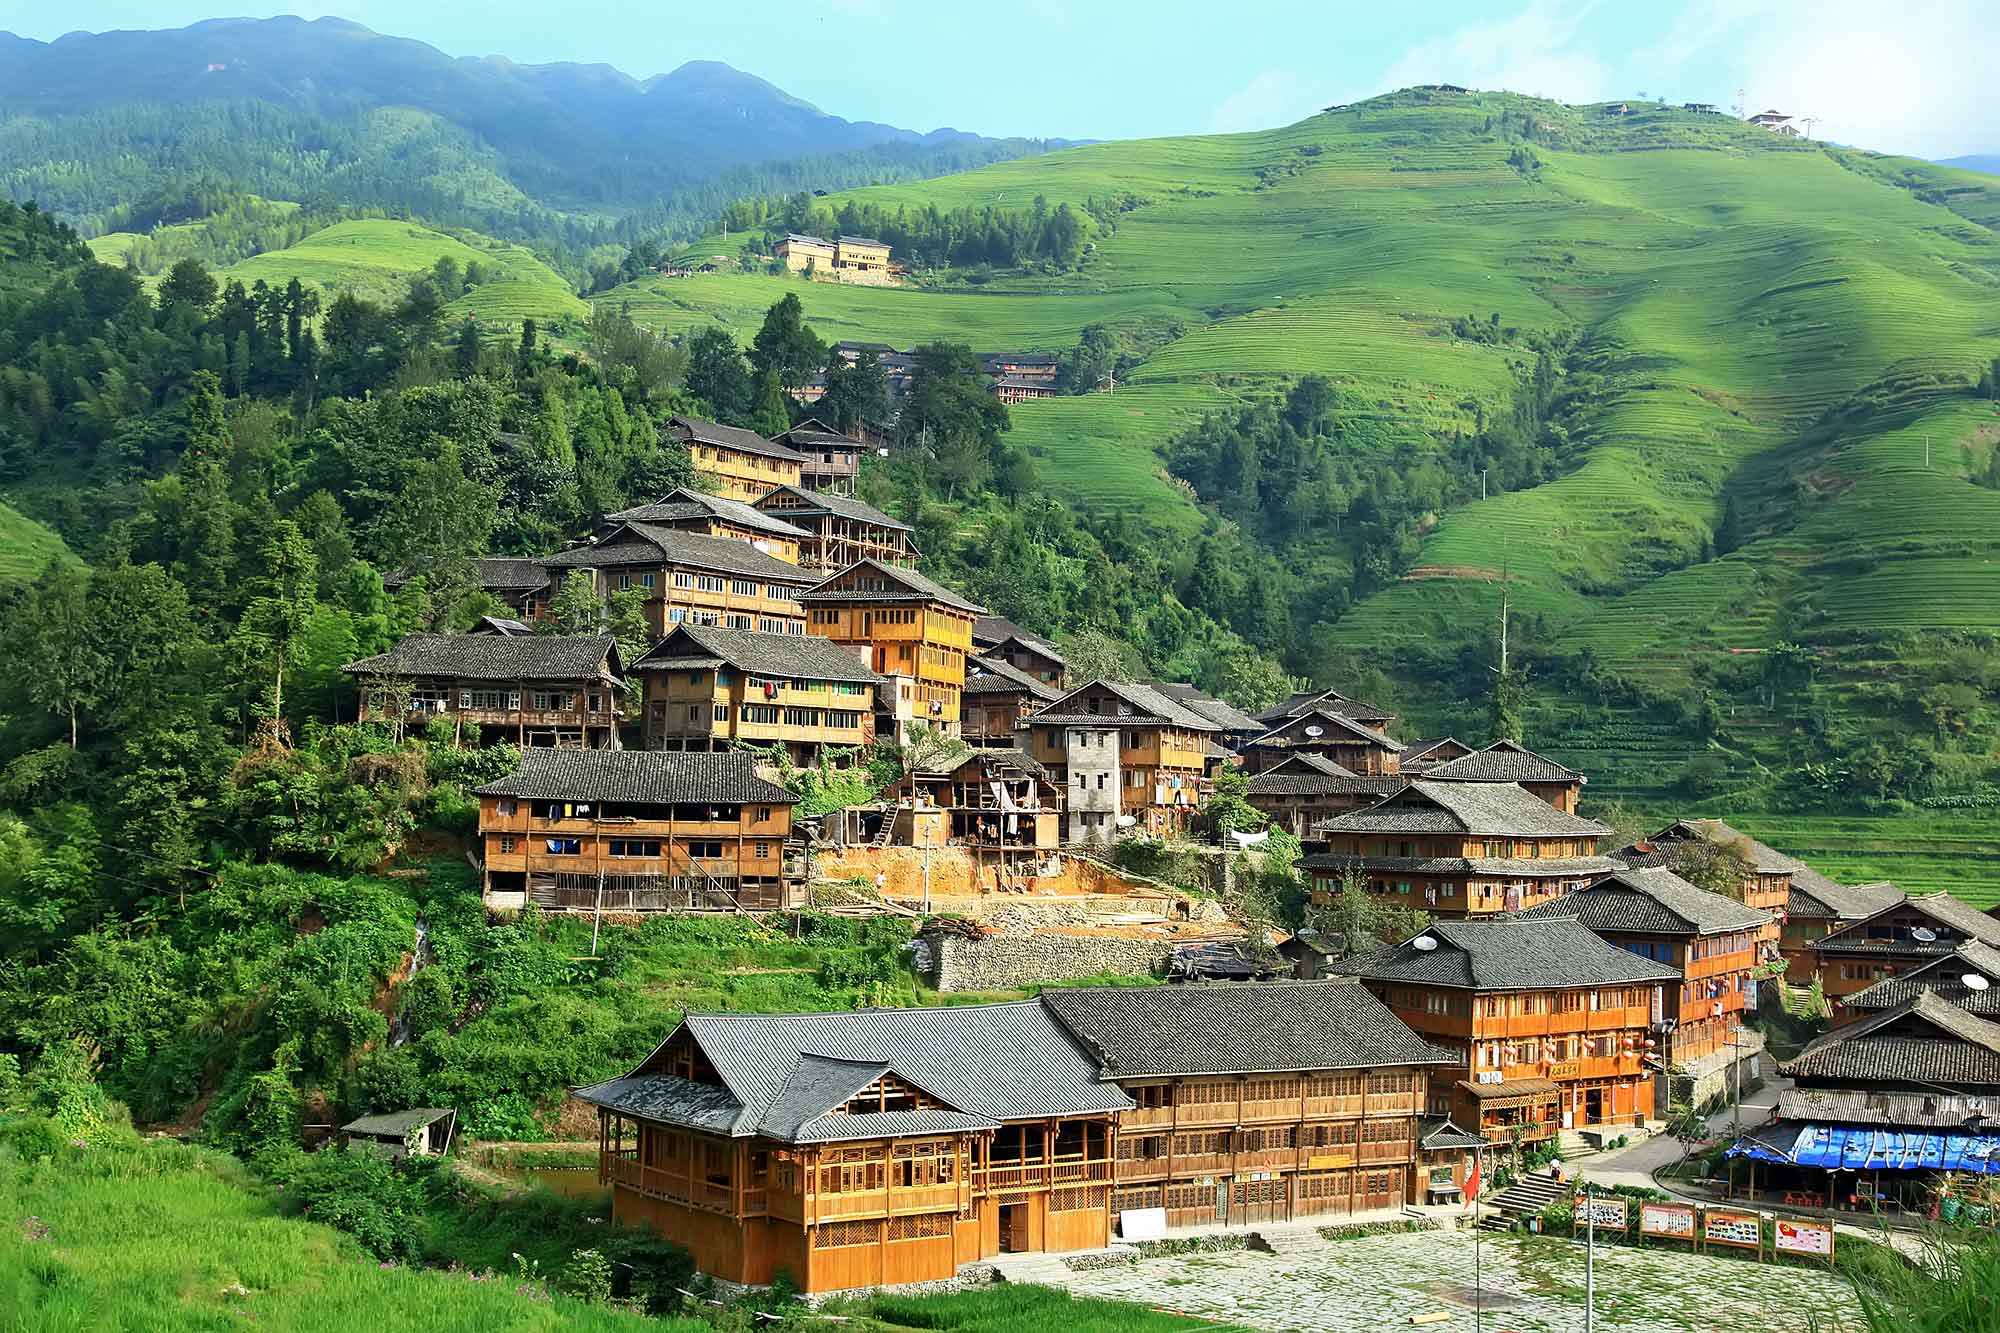 dazhai-village-longji-rice-terraces-china-1